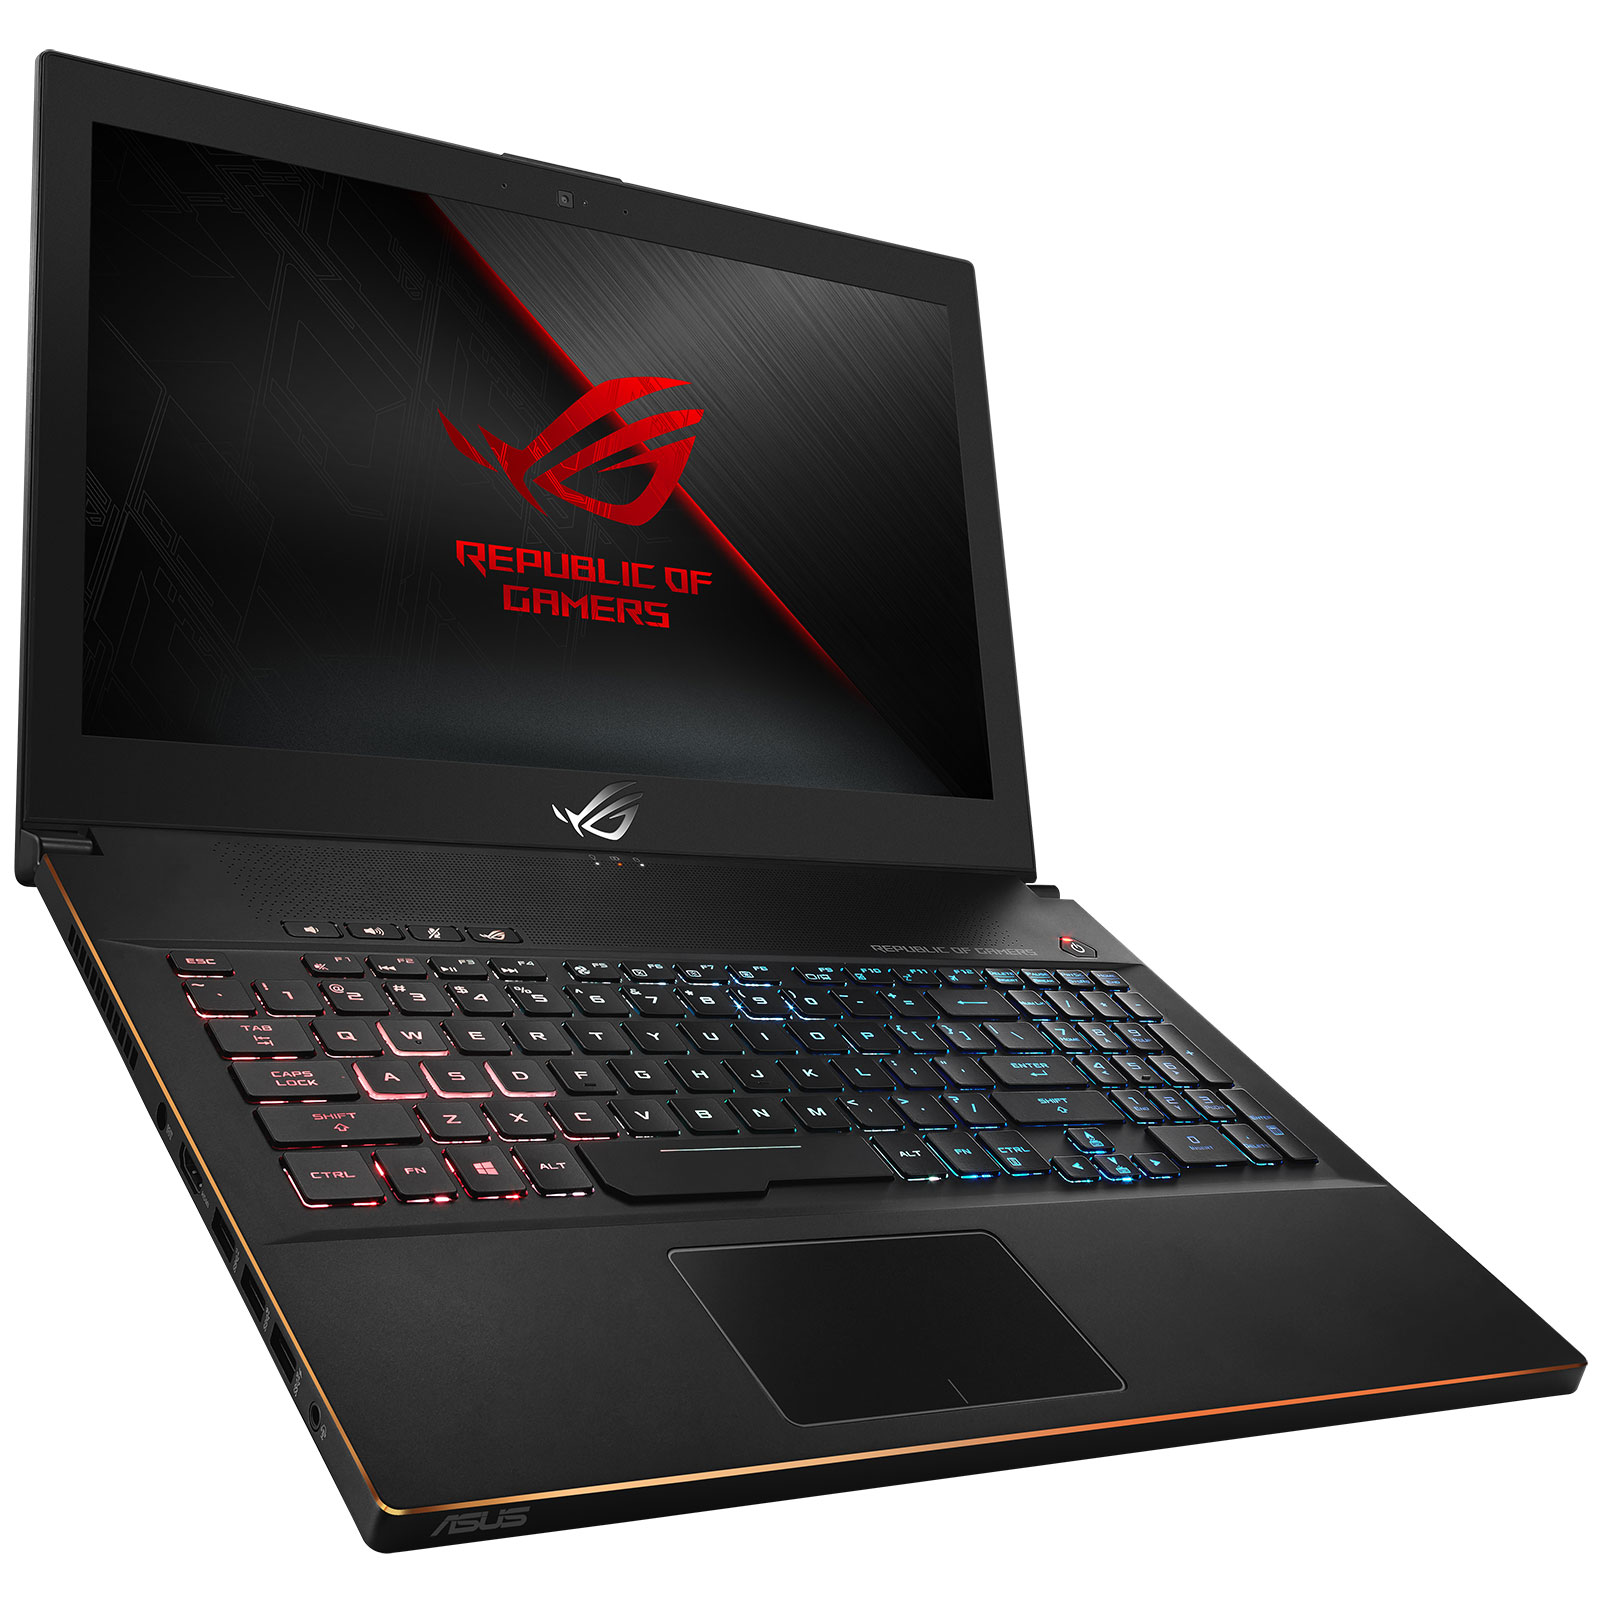 "PC portable ASUS ROG Zephyrus GM501GM-EI005T Intel Core i7-8750H 16 Go SSD 256 Go + SSHD 1 To 15.6"" LED Full HD 144 Hz G-SYNC NVIDIA GeForce GTX 1060 6 Go Wi-Fi AC/Bluetooth Webcam Windows 10 Famille 64 bits (garantie constructeur 2 ans)"